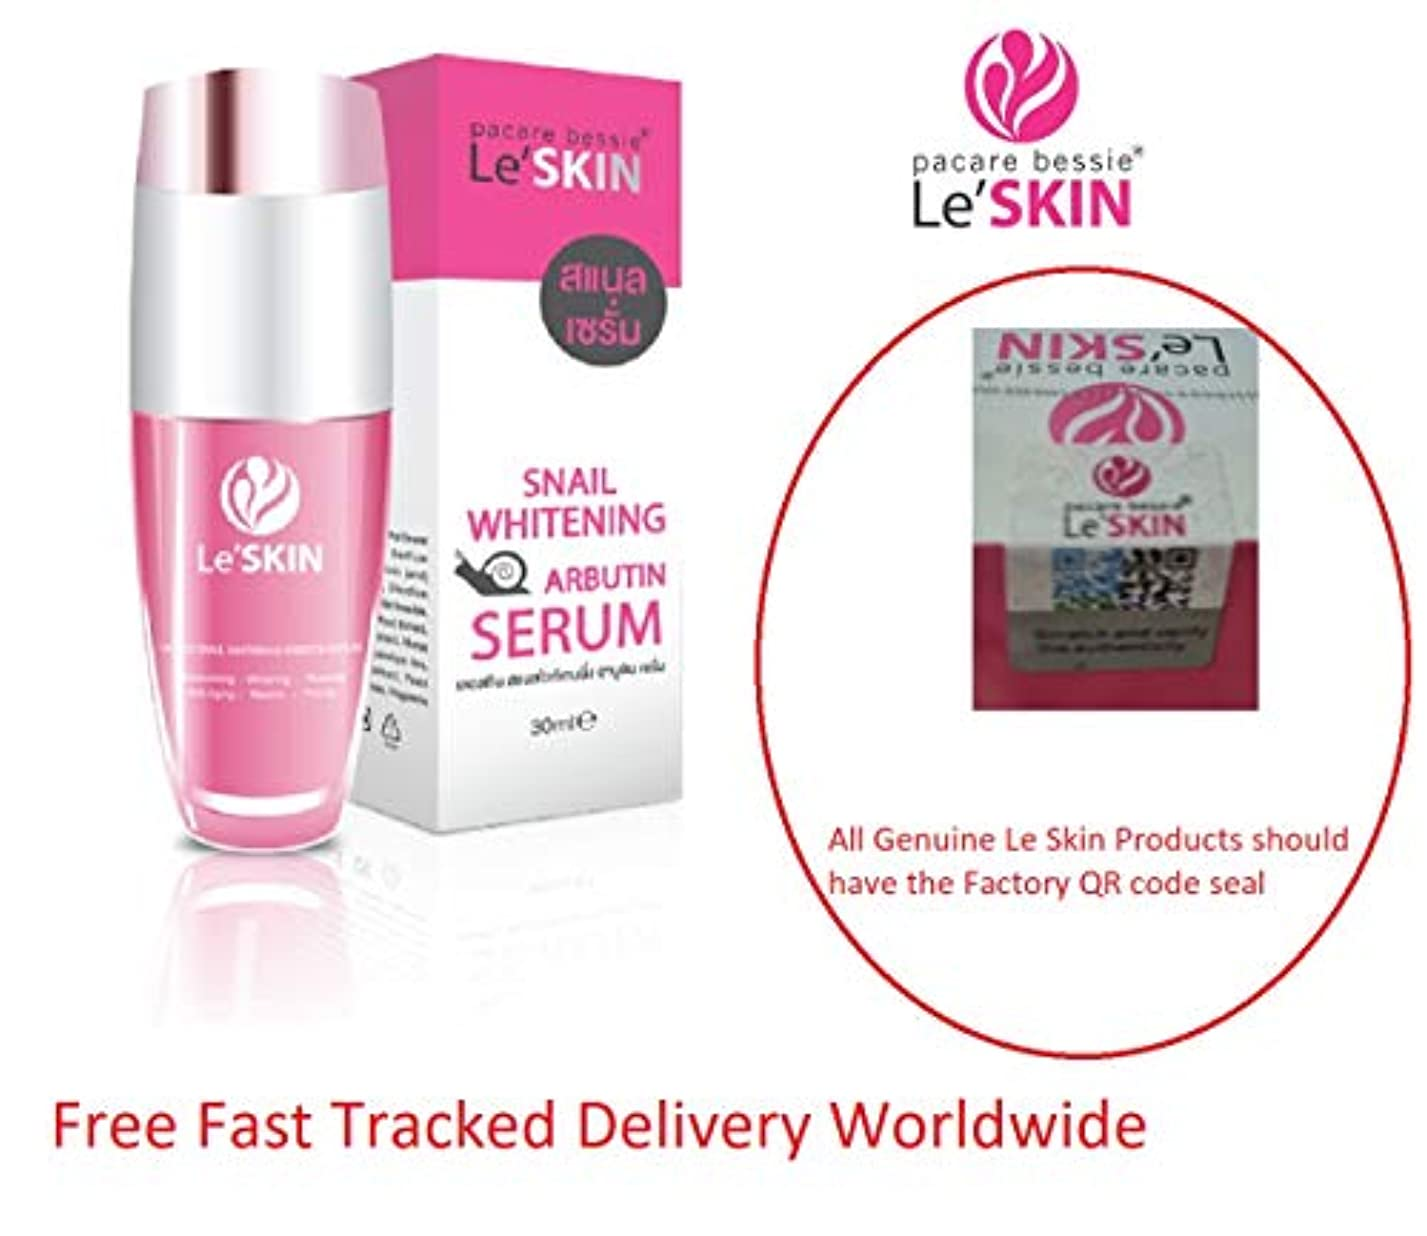 熱心な死弁護人Le' SKIN SNAIL WHITENING ARBUTIN SERUM 30ml Reduce Black Spots Radiant Skin ** FREE TRACKED WORLWIDE DELIVERY...